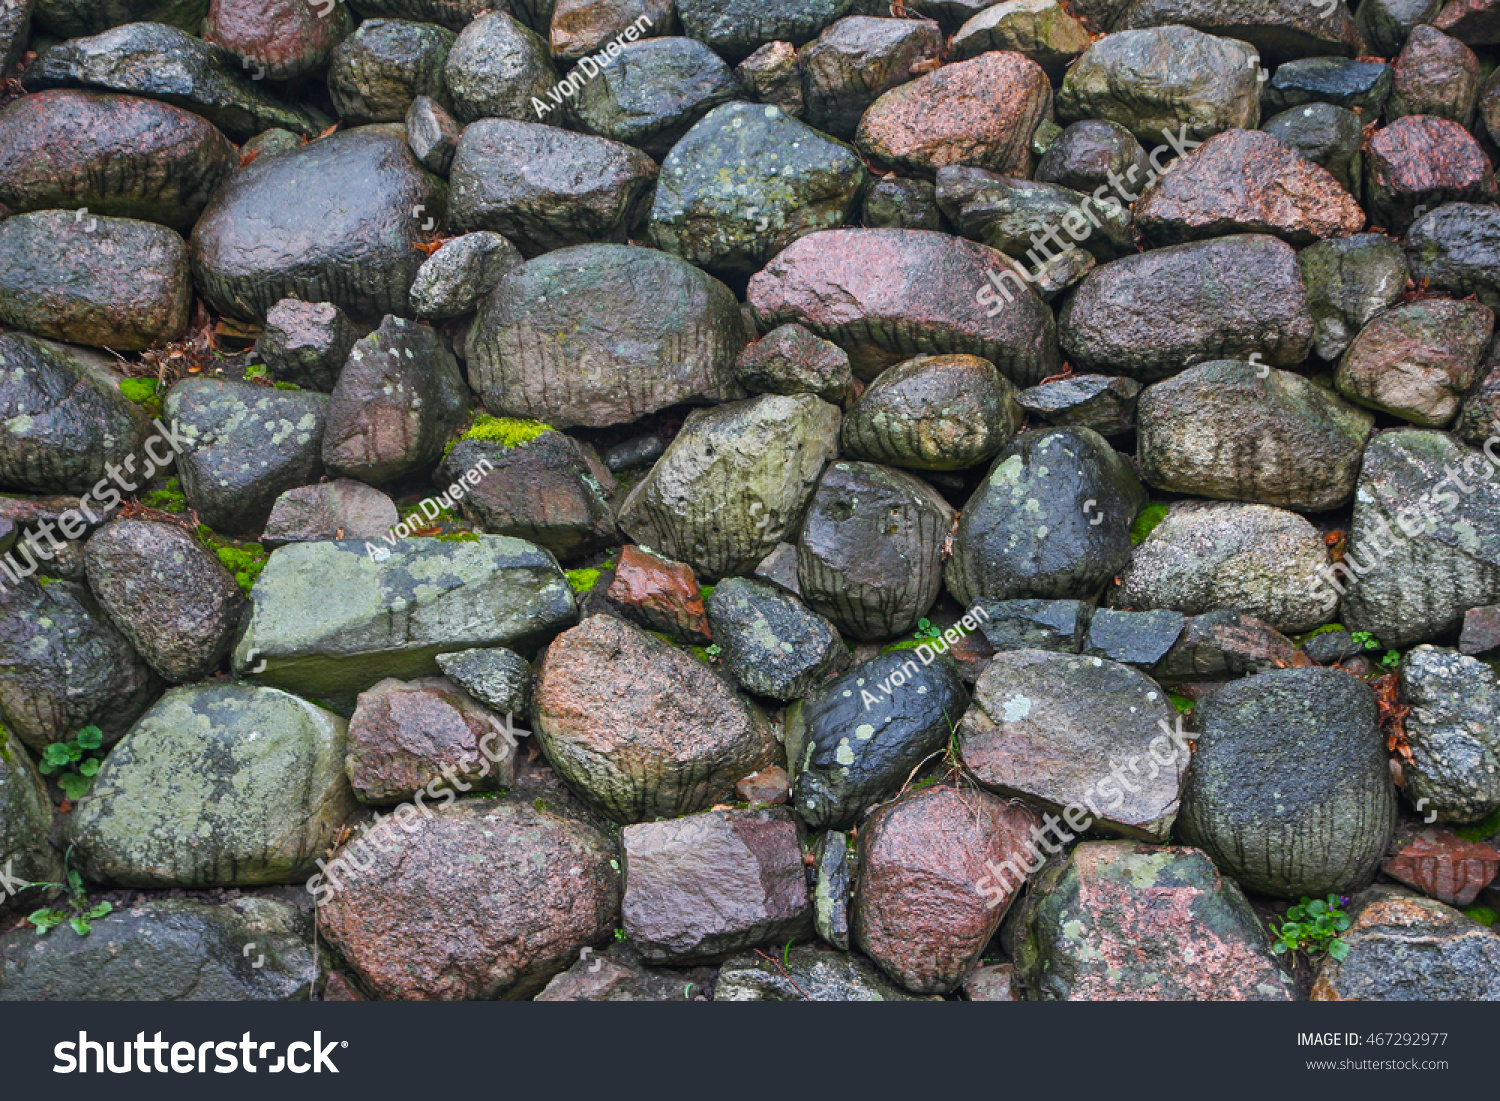 feldsteinmauer stock photo (edit now) 467292977 - shutterstock